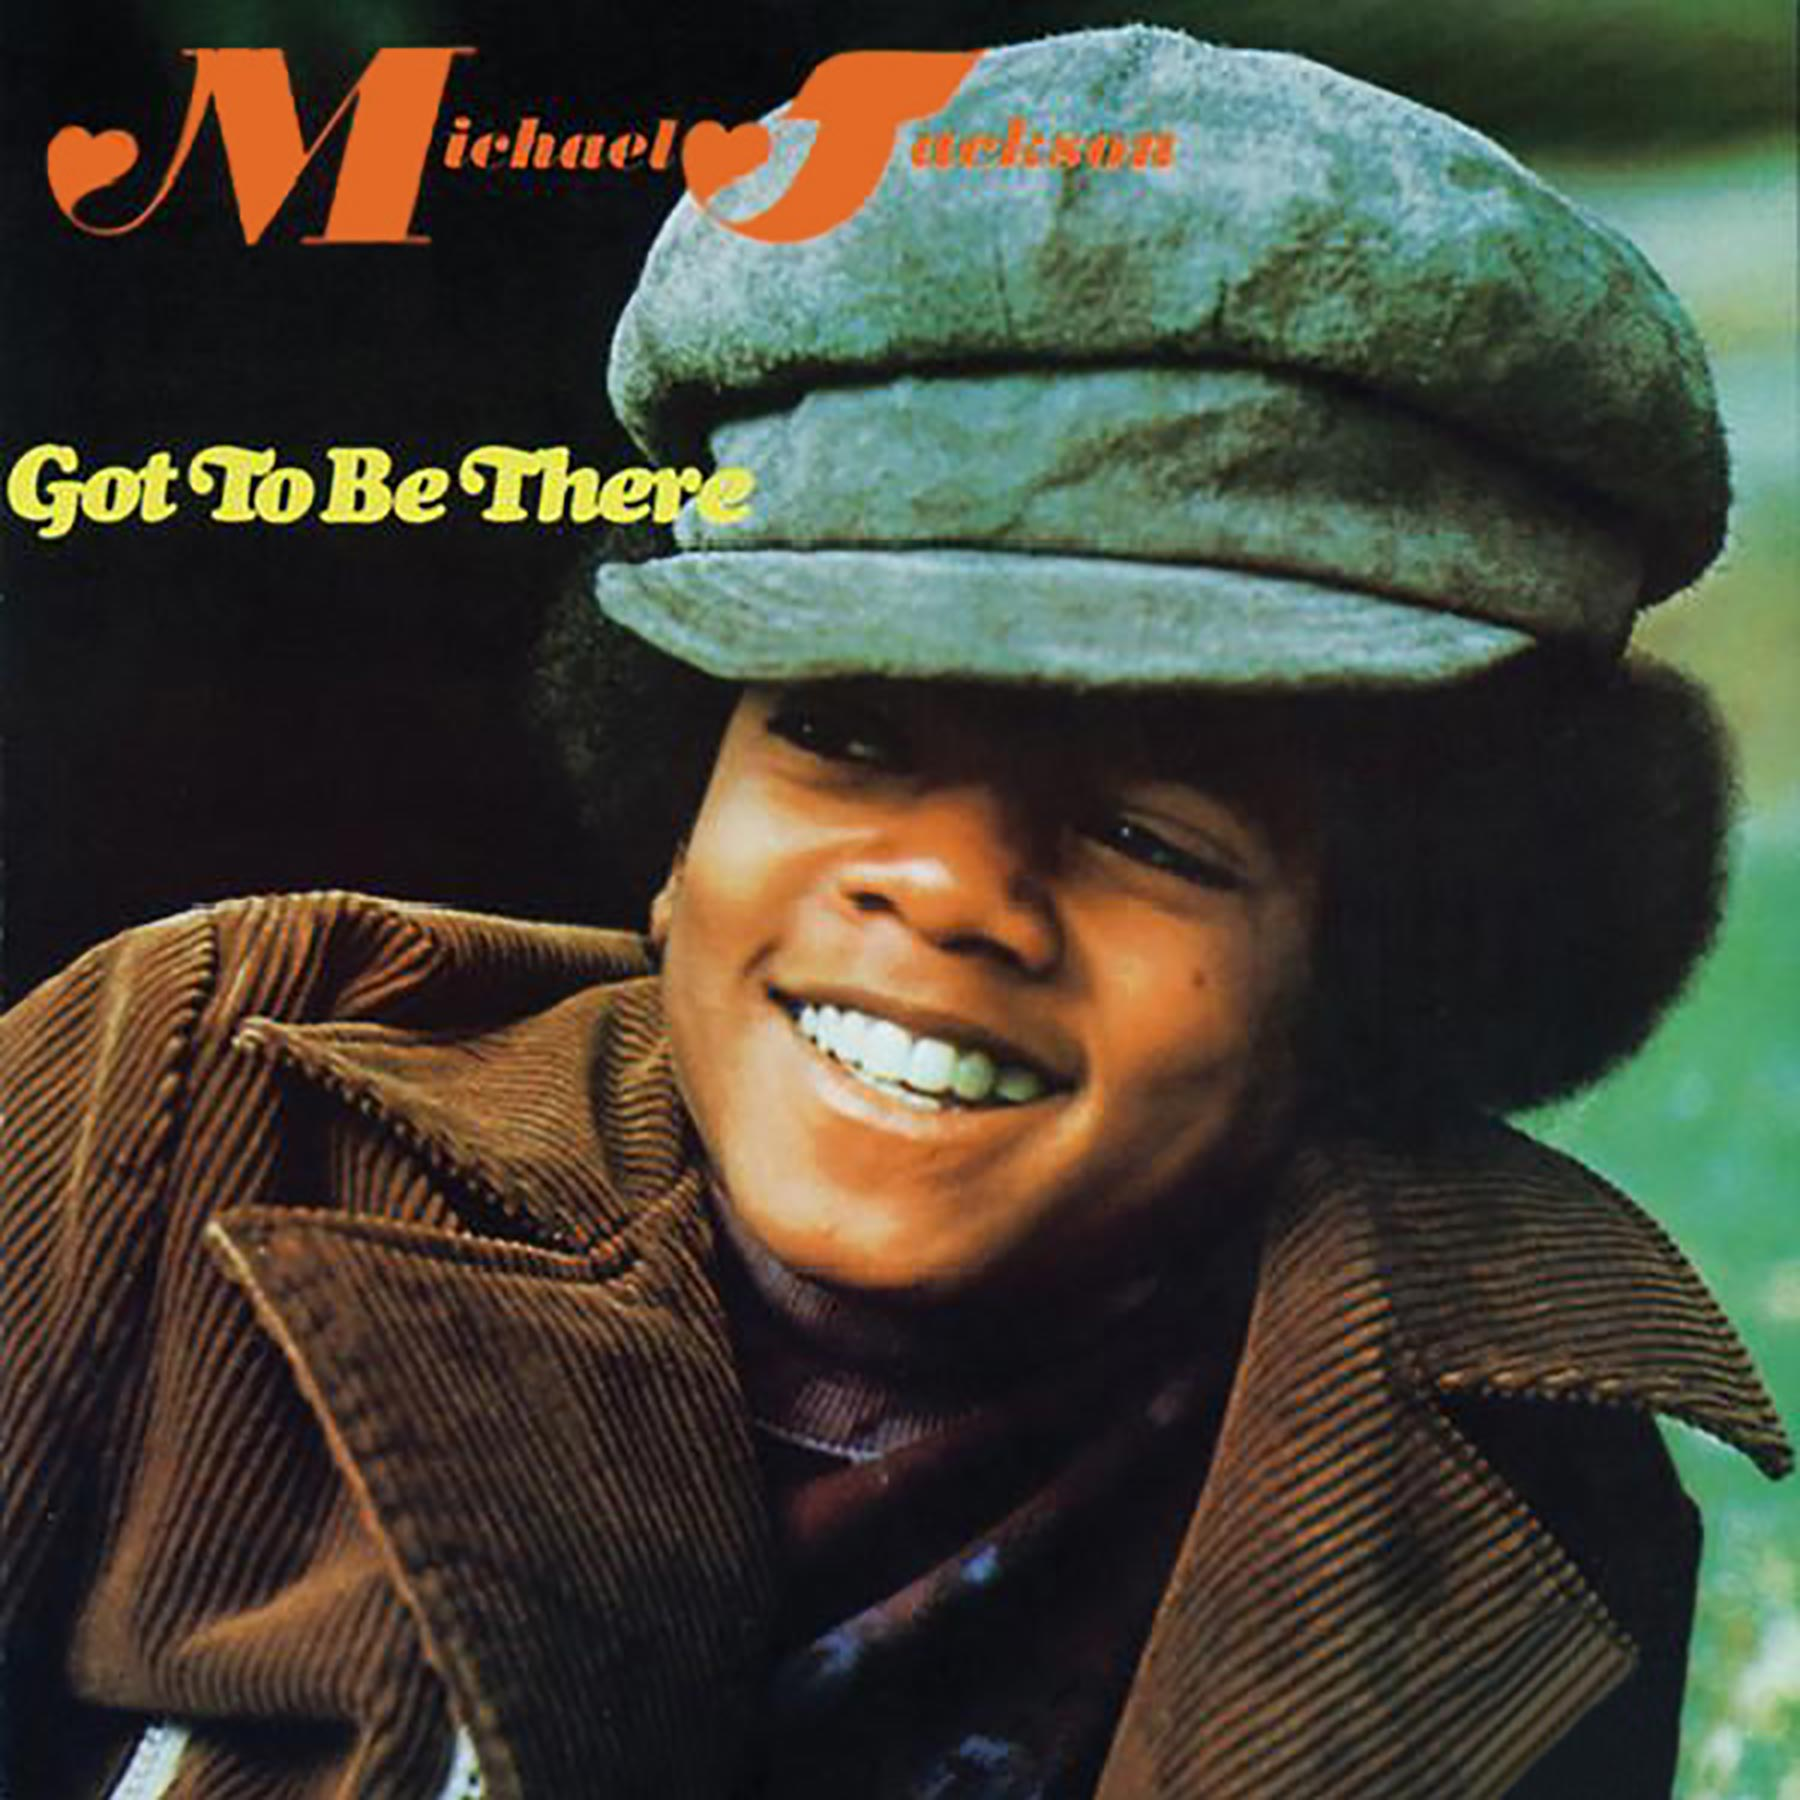 Got To Be There by Michael Jackson1972